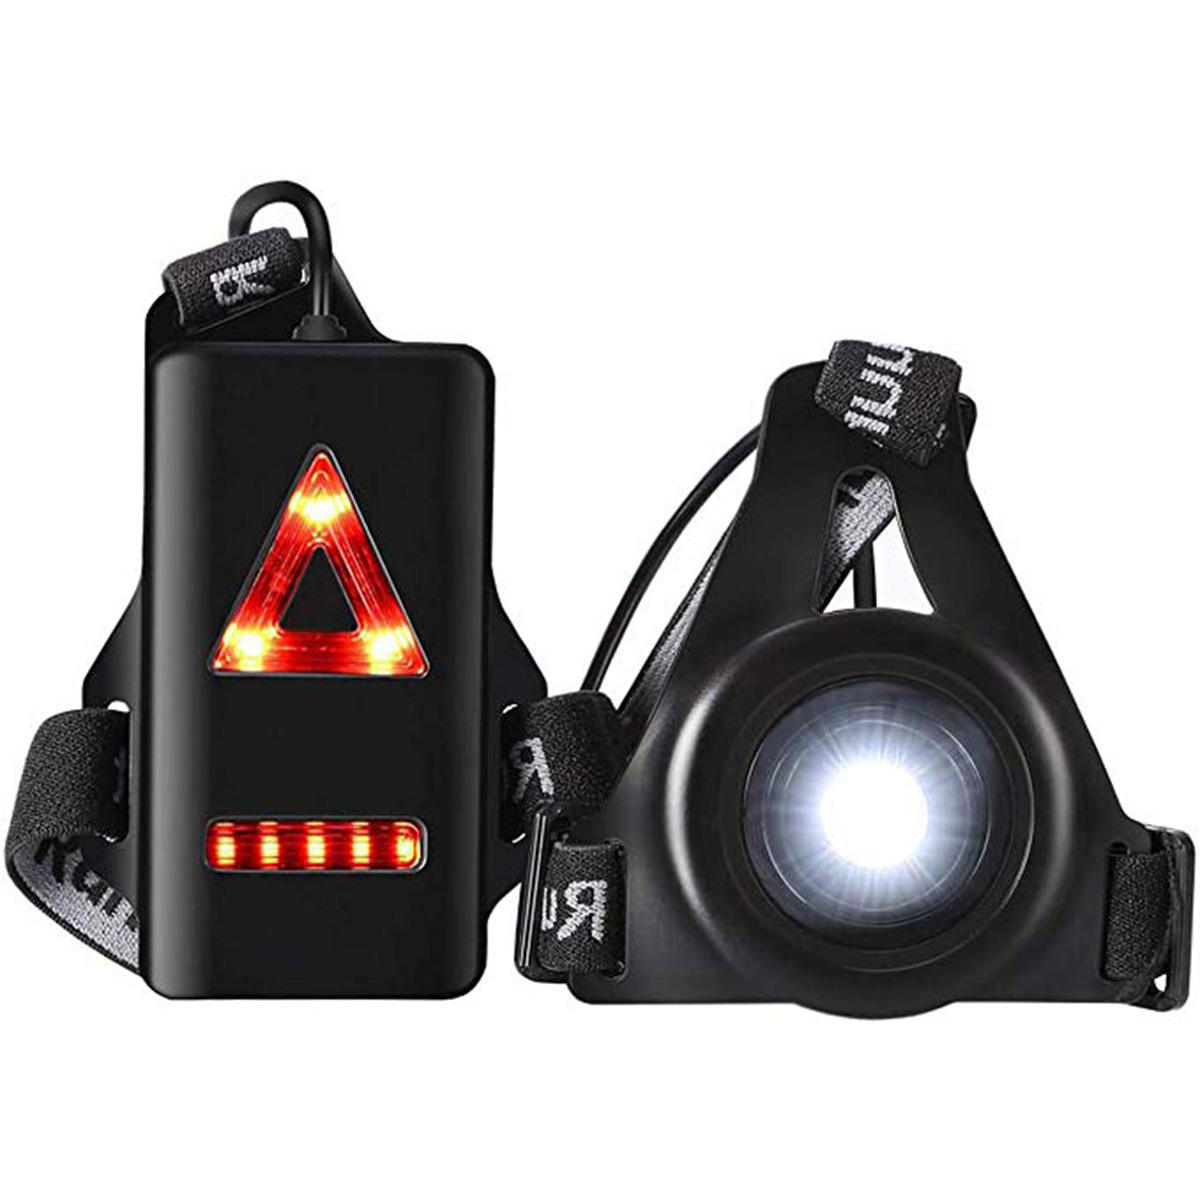 Chest Running Light for Runners and Joggers with Adjustable Beam and Reflector Widely Use Rechargeable Safety Light, Headlamp